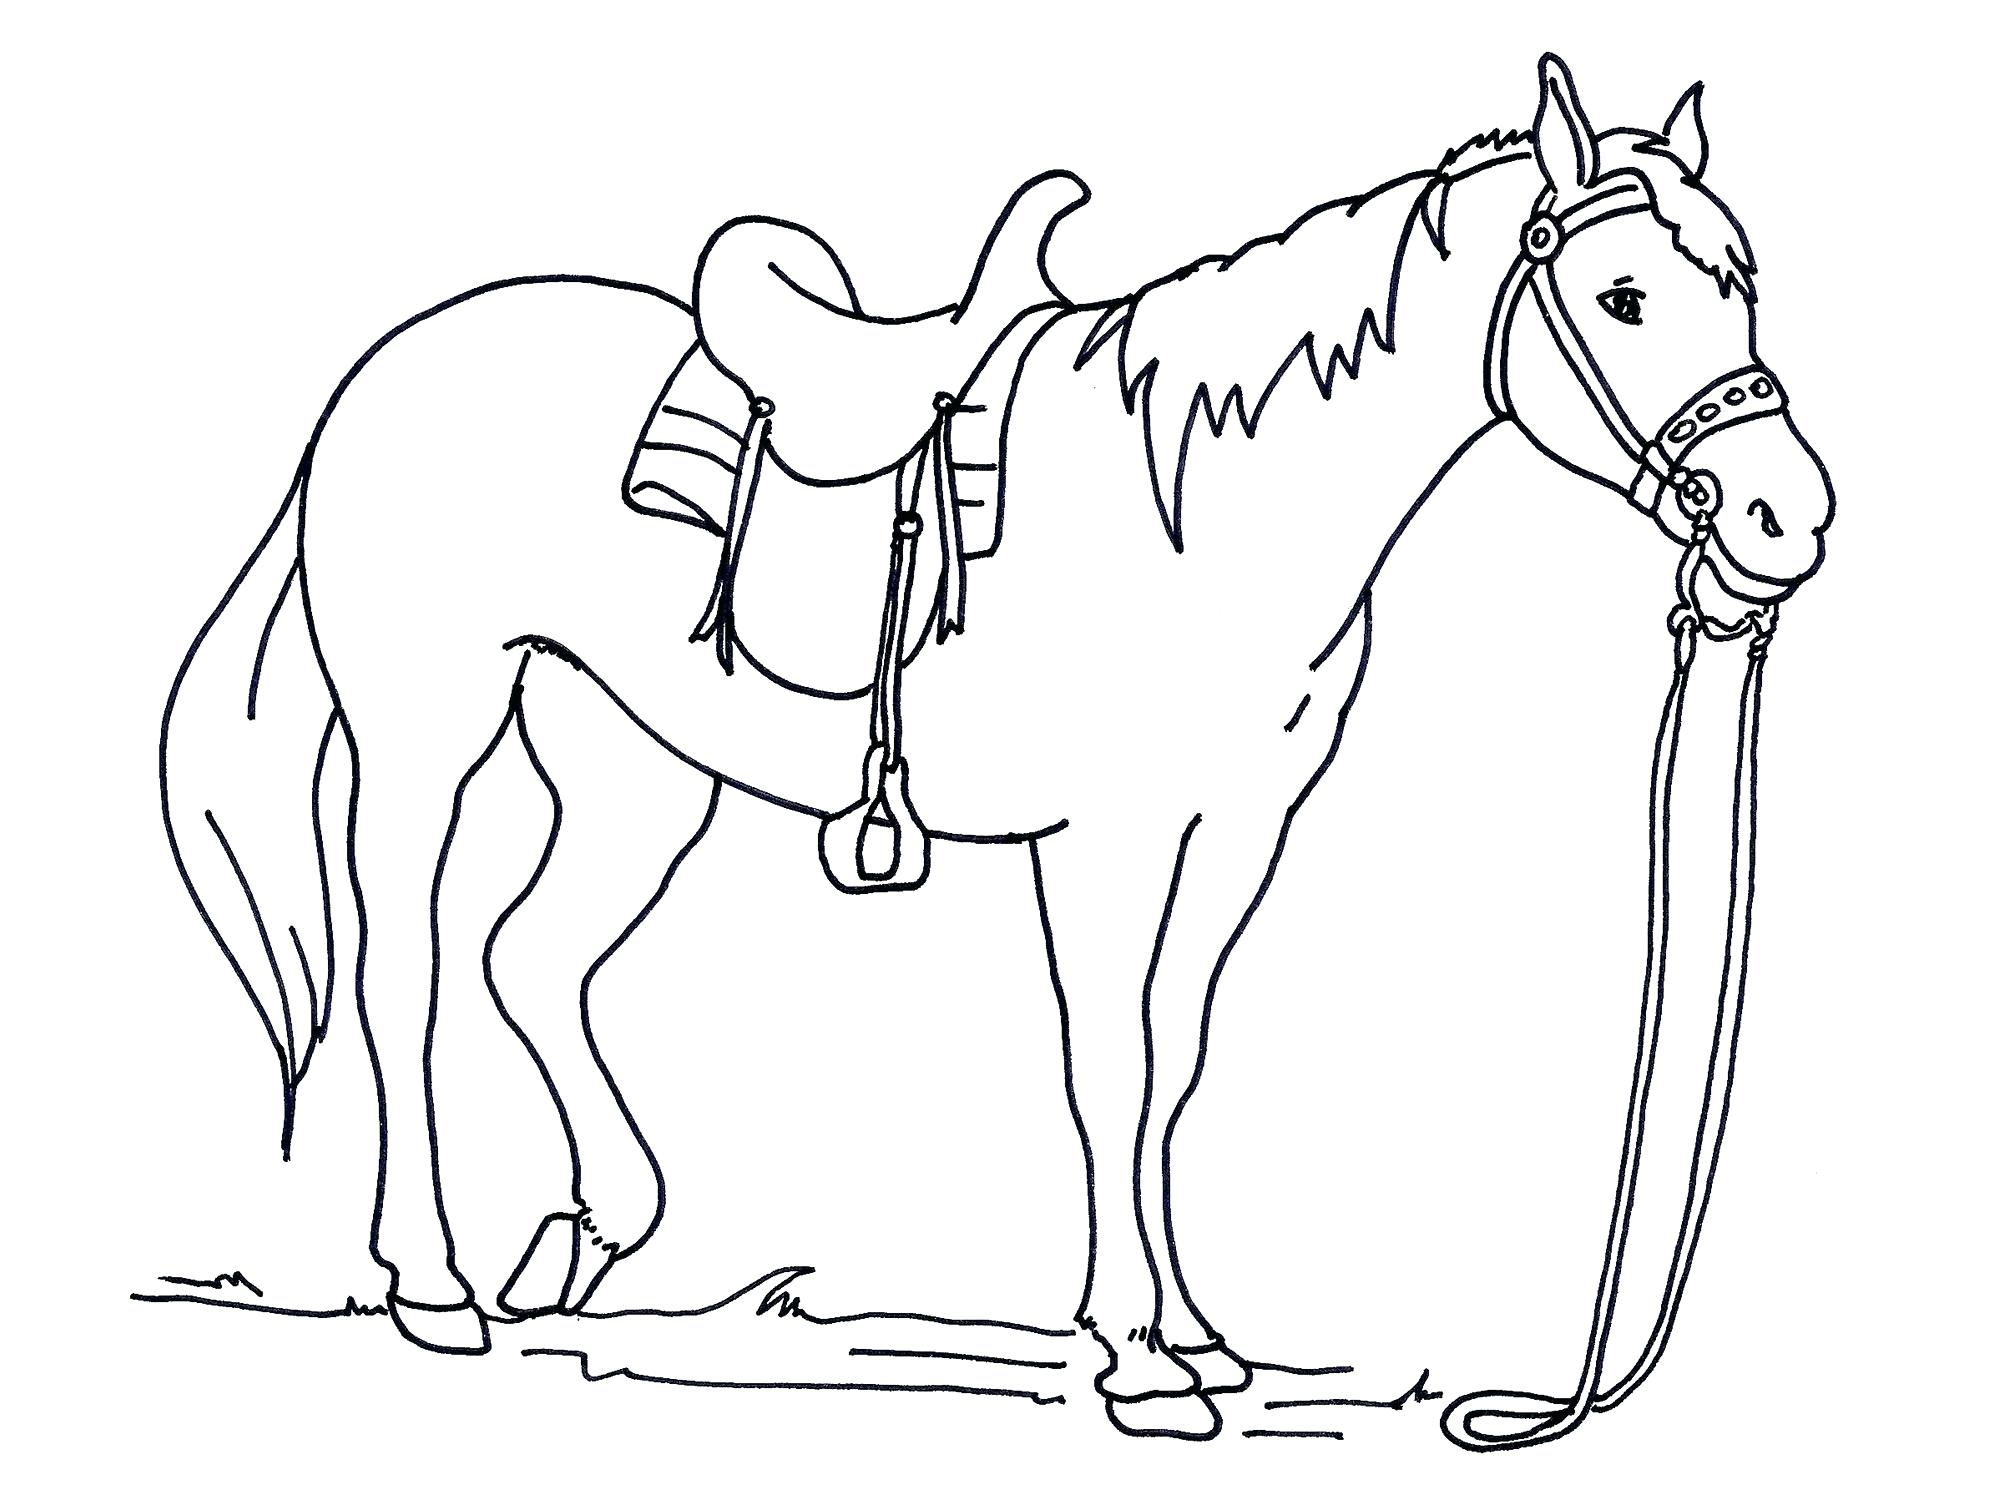 Lifetime Horse Color Sheet Coloring Pages Hors Unknown Gallery Of Sturdy Coloring Page A Horse Pages Horses R 3353 Unknown Download